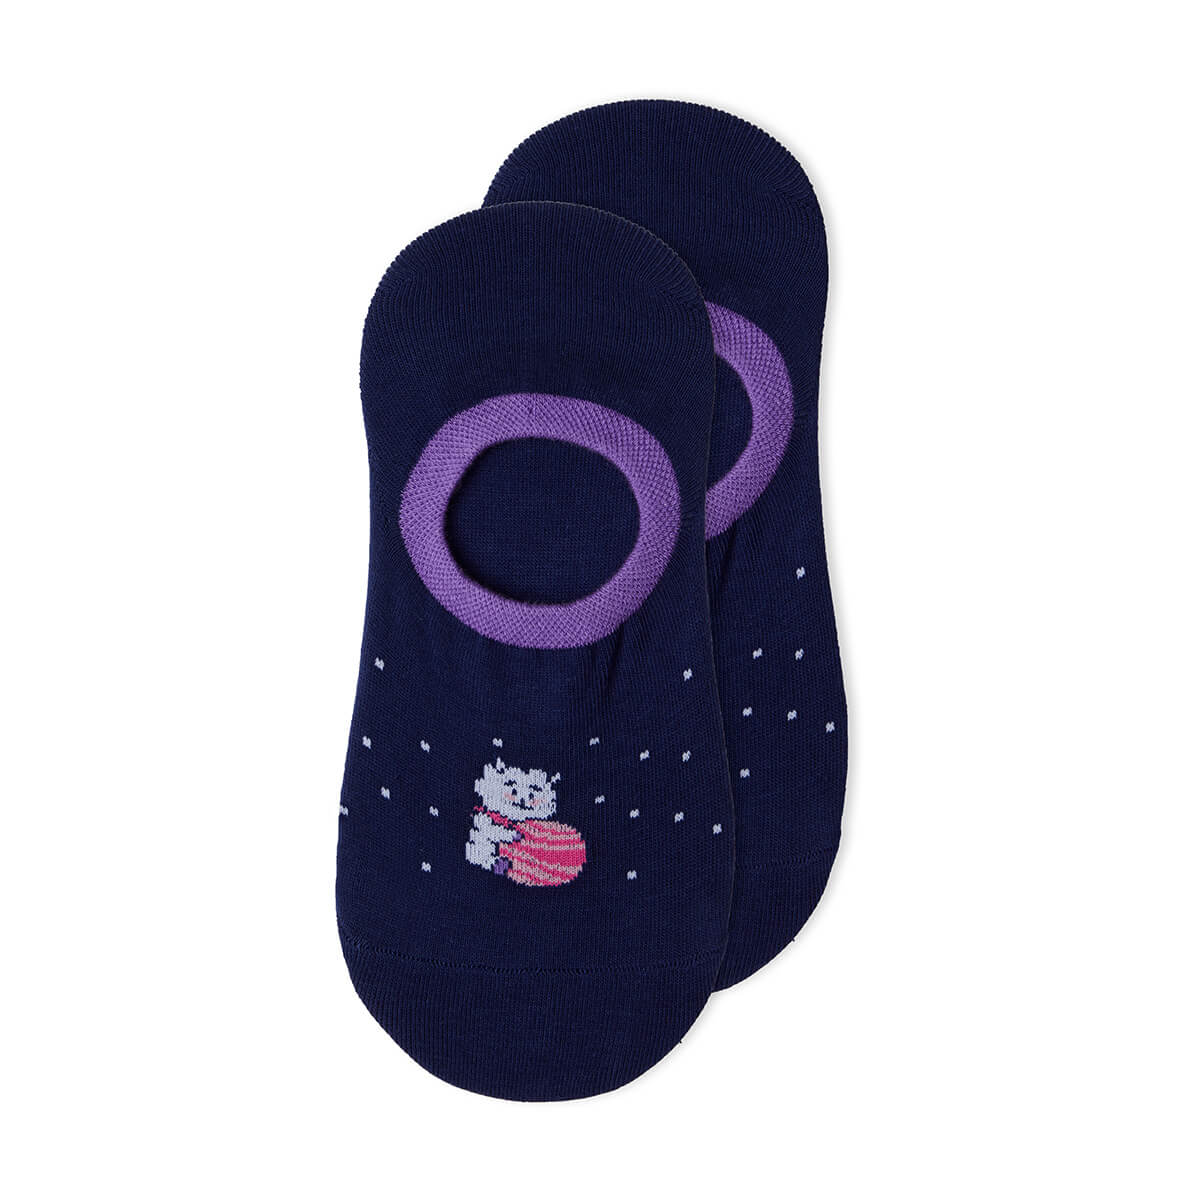 BT21 RJ Space Wappen No Show Socks